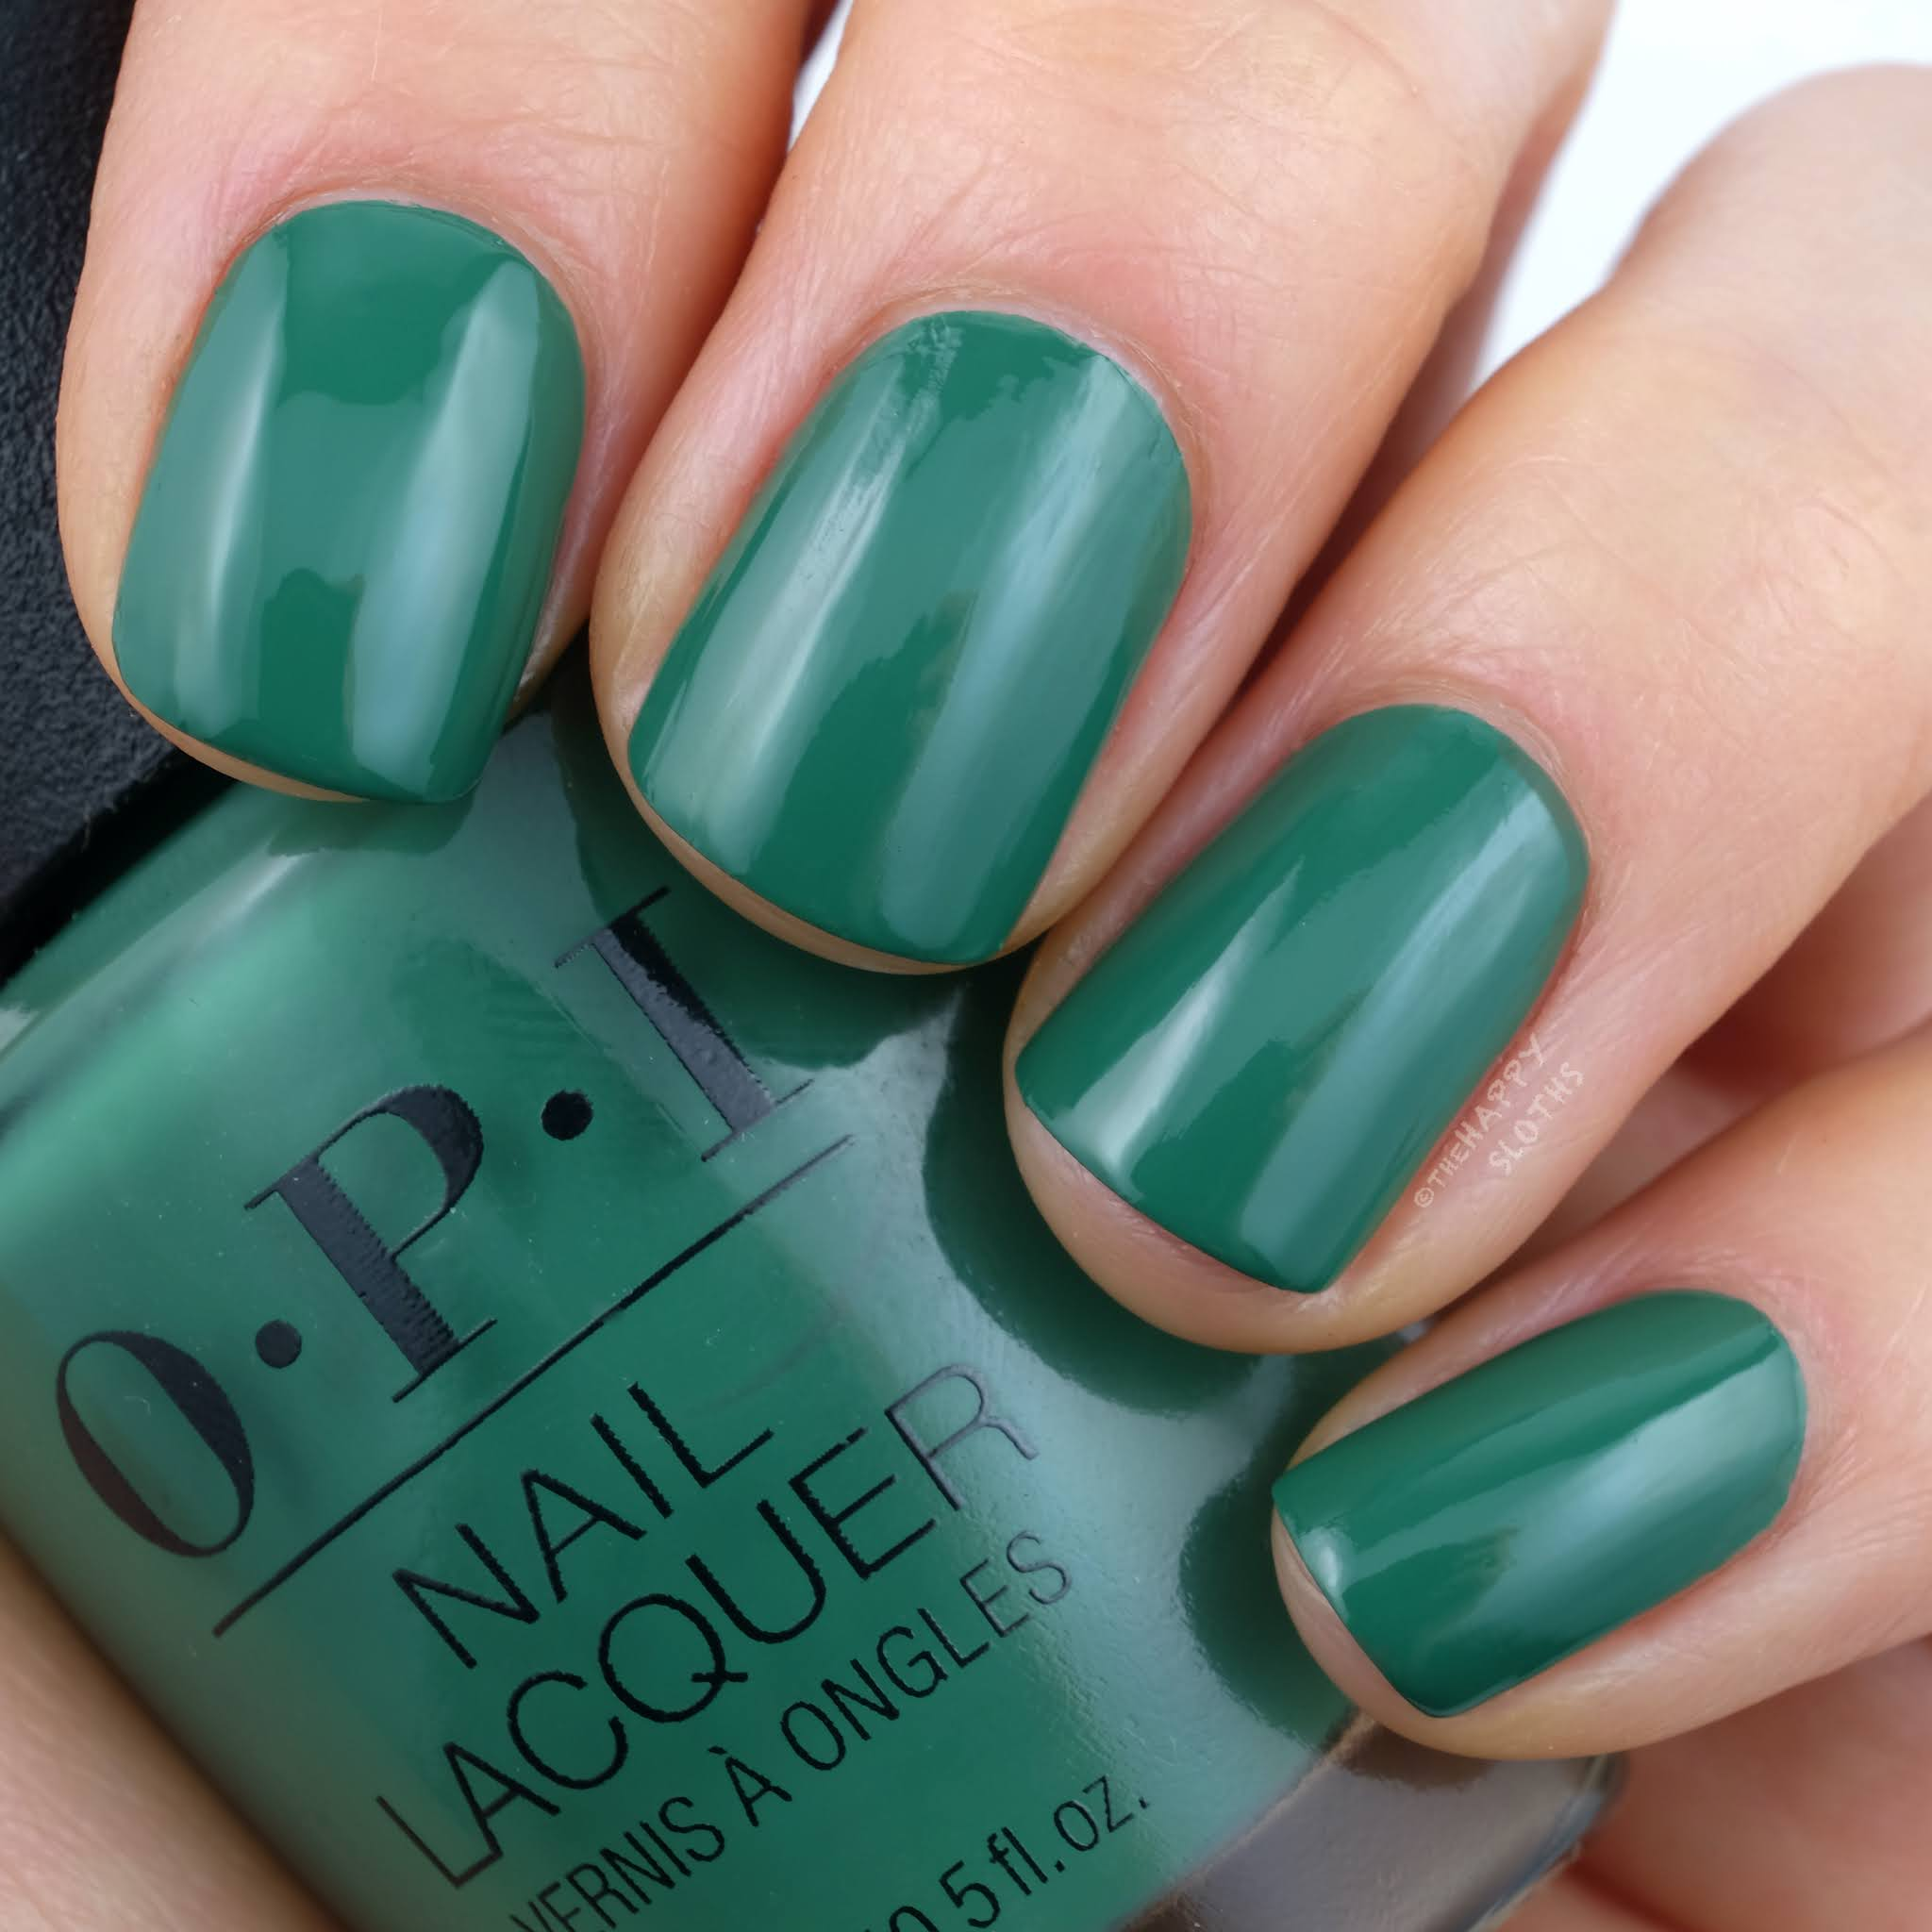 OPI | Spring 2021 Hollywood Collection | Rated Pea-G: Review and Swatches